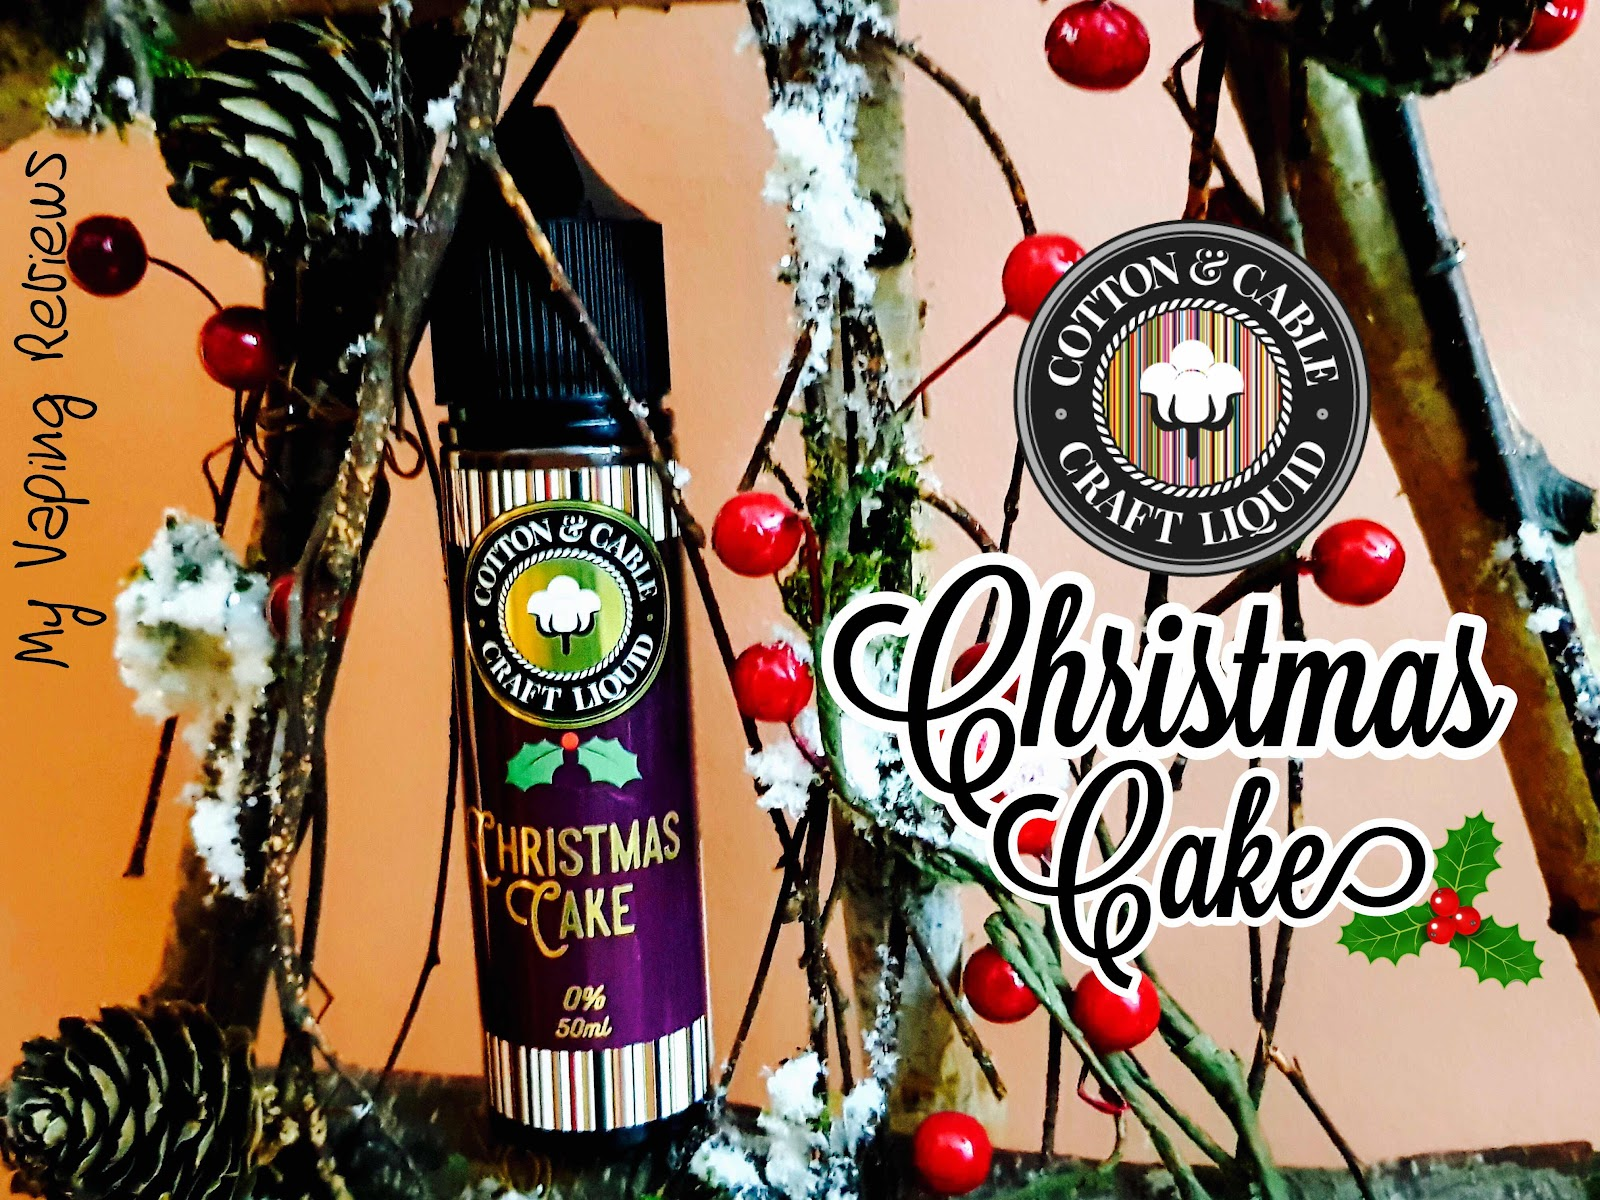 cotton and Cable Christmas Cake Ejuice Review